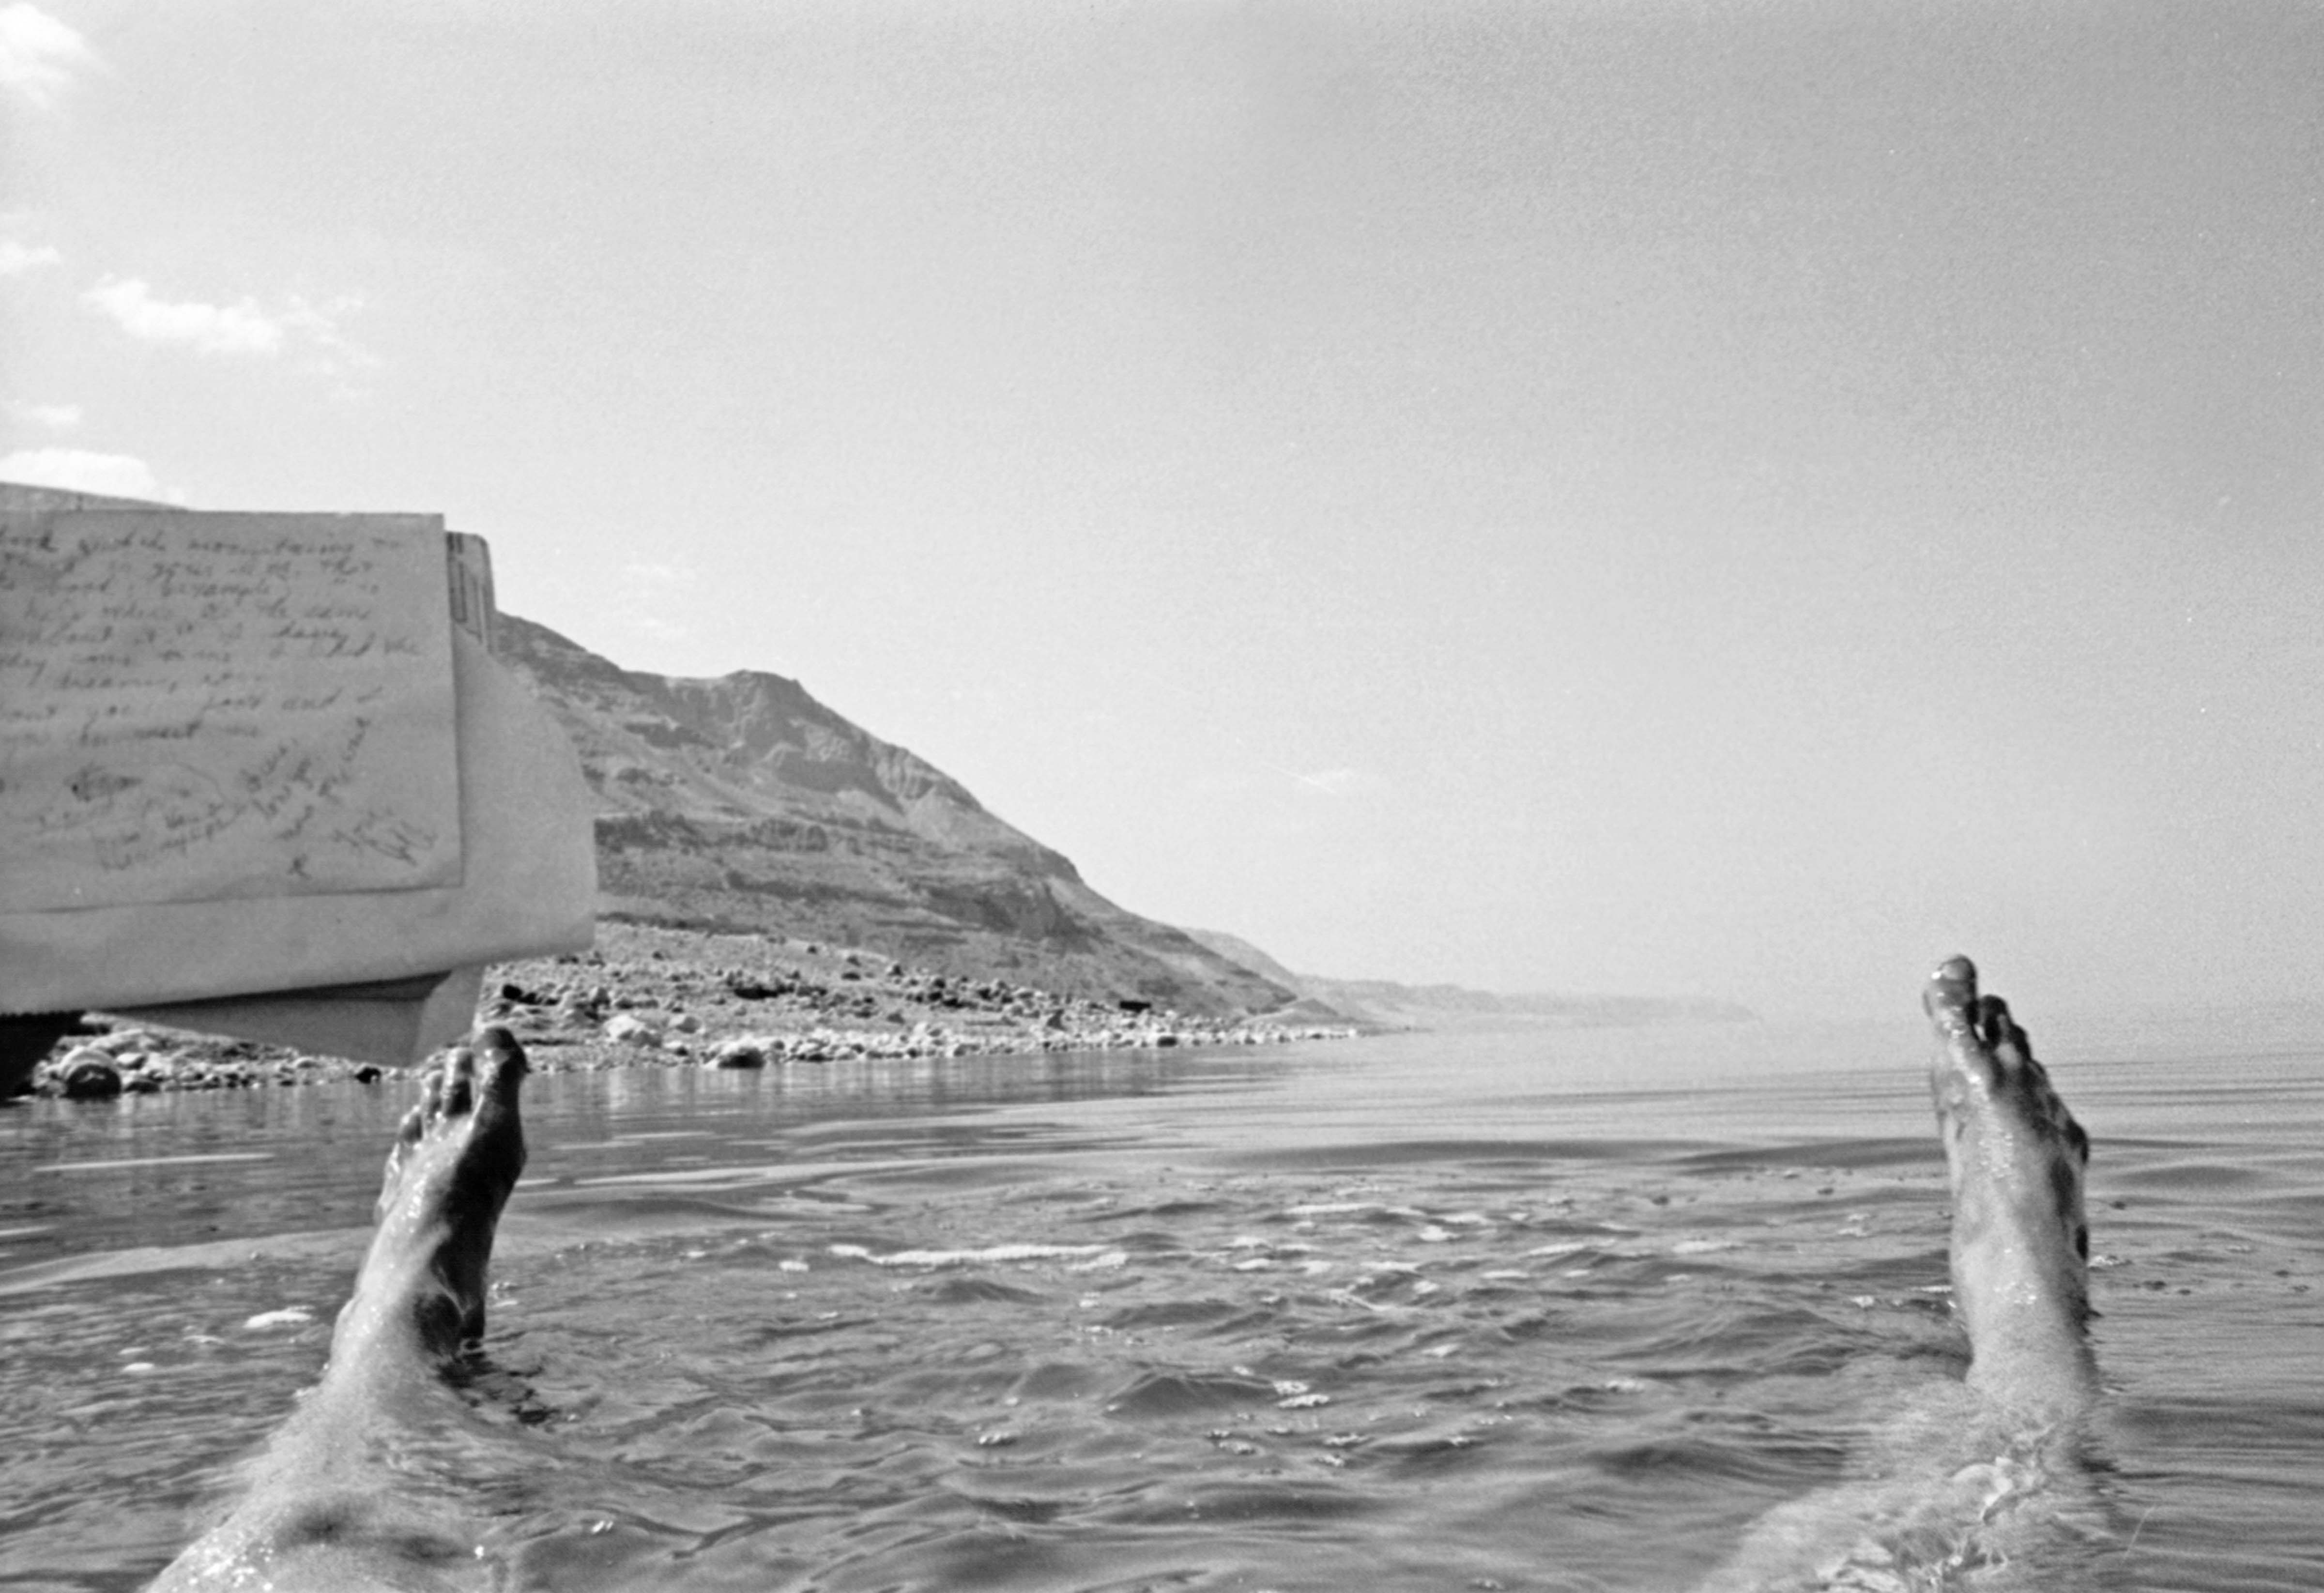 Palestine, Jeff Shea Writing Love Letter While Floating In Dead Sea, 1984